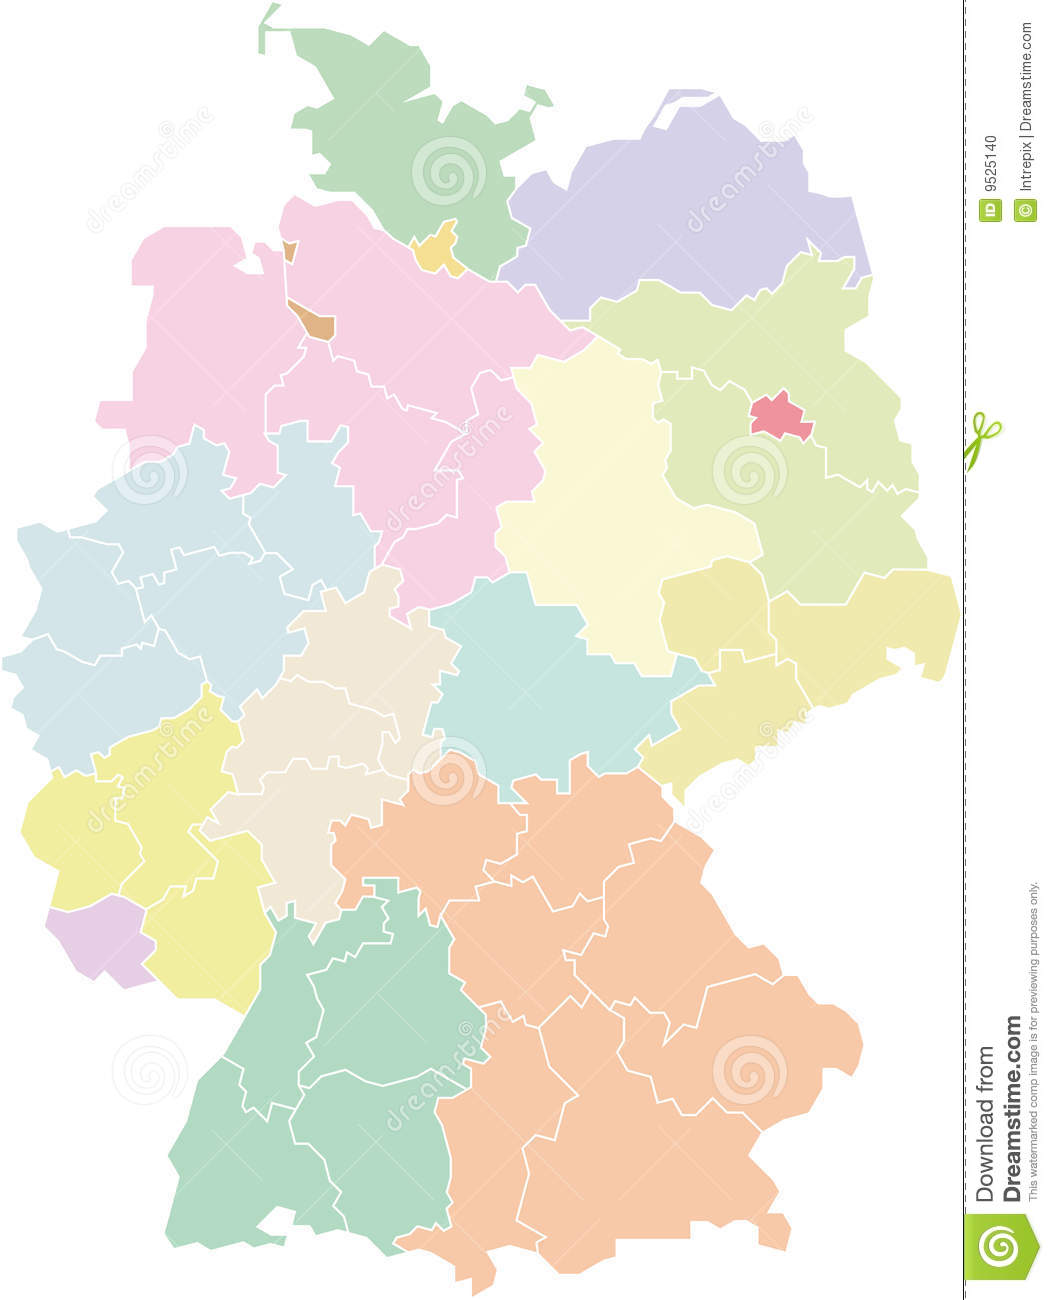 Germany Map Federal States And Regions Stock Photo Image - Germany map download